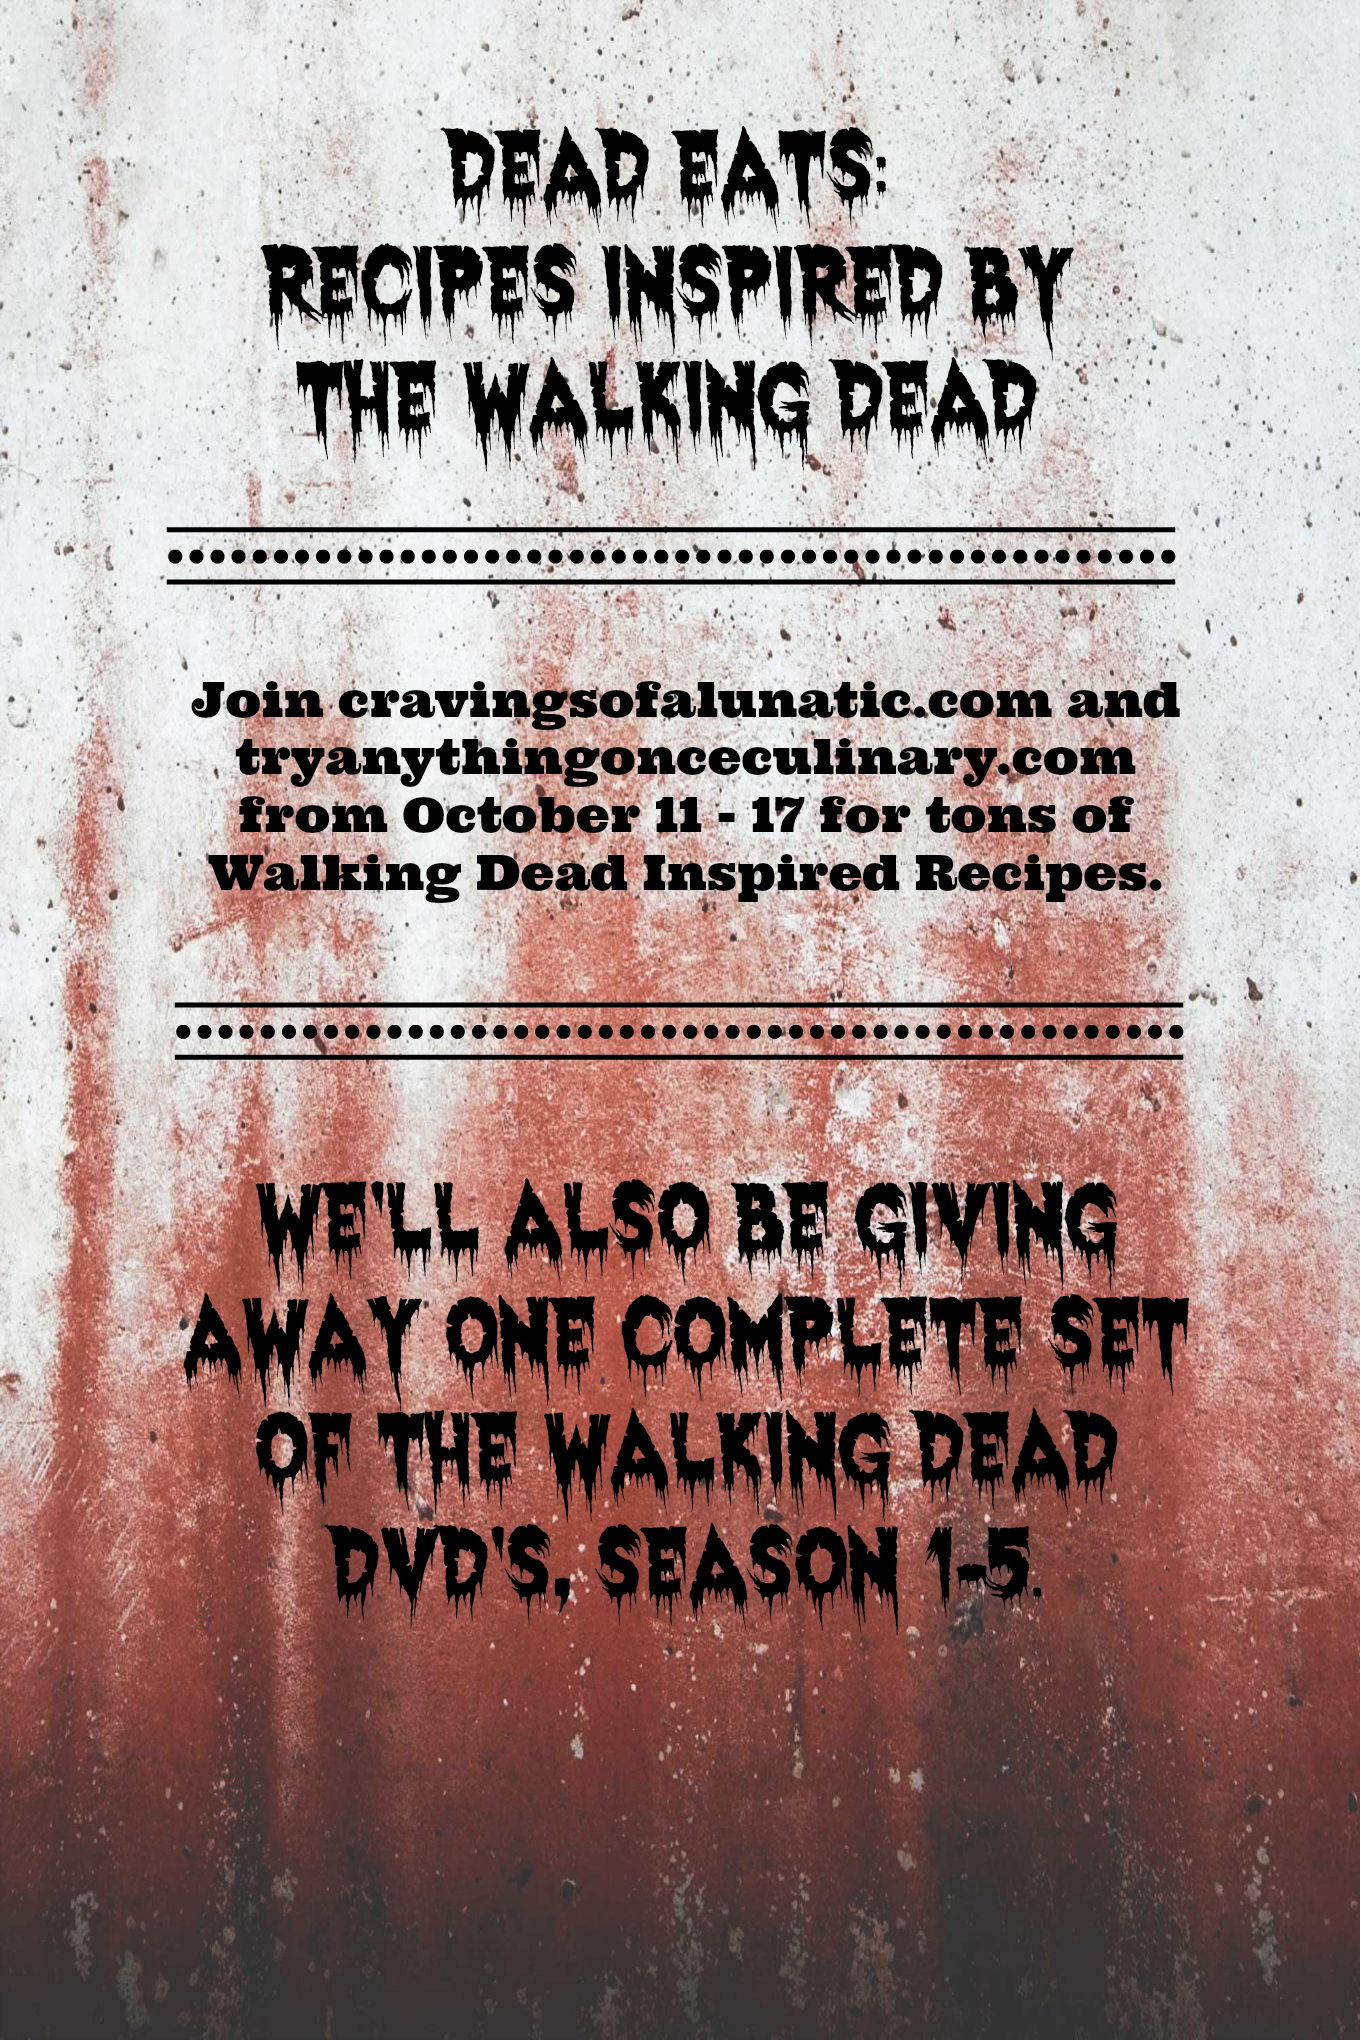 Hello all you Walking Dead fans! Today we kick off a week long series called Dead Eats: Recipes Inspired by The Walking Dead! Swing by cravingsofalunatic.com for recipes and a Giveaway for One Complete Set of The Walking Dead DVD's, Season 1 to 5!!